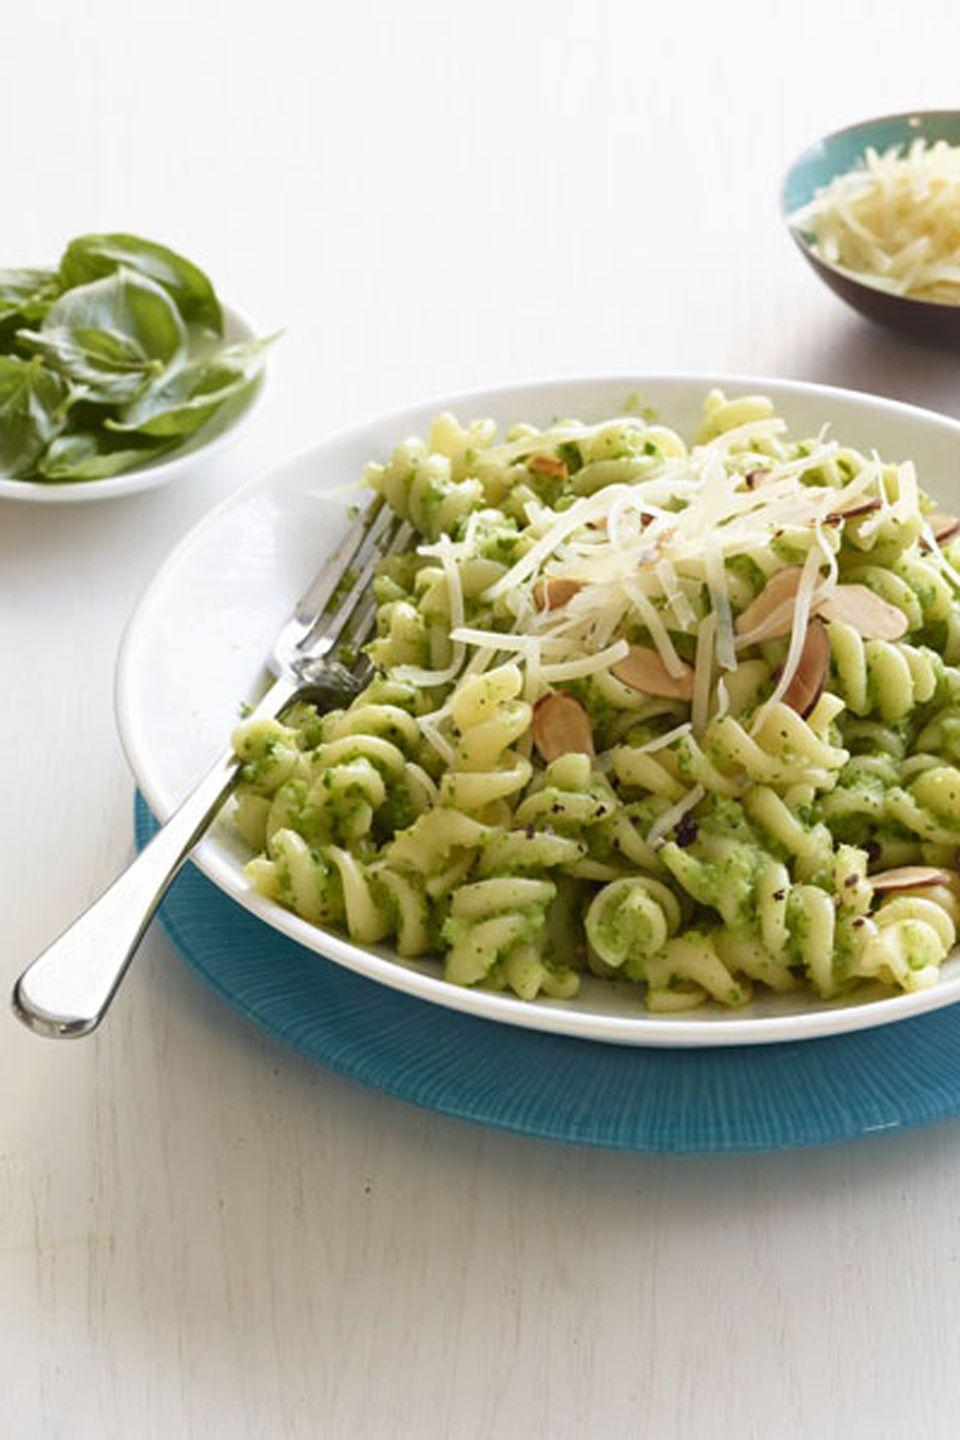 "Broccoli pesto packs more nutrition <em>and</em> flavor than the typical herb variety. <a href=""https://www.countryliving.com/food-drinks/recipes/a34743/fusilli-broccoli-pesto-recipe-wdy0115/"" rel=""nofollow noopener"" target=""_blank"" data-ylk=""slk:Get the recipe."" class=""link rapid-noclick-resp""><strong>Get the recipe.</strong> </a><br> <a href=""https://www.amazon.com/Hamilton-Beach-70740-8-Cup-Processor/dp/B00755KNCS?tag=syn-yahoo-20&ascsubtag=%5Bartid%7C10050.g.1186%5Bsrc%7Cyahoo-us"" class=""link rapid-noclick-resp"" rel=""nofollow noopener"" target=""_blank"" data-ylk=""slk:SHOP FOOD PROCESSORS"">SHOP FOOD PROCESSORS</a>"